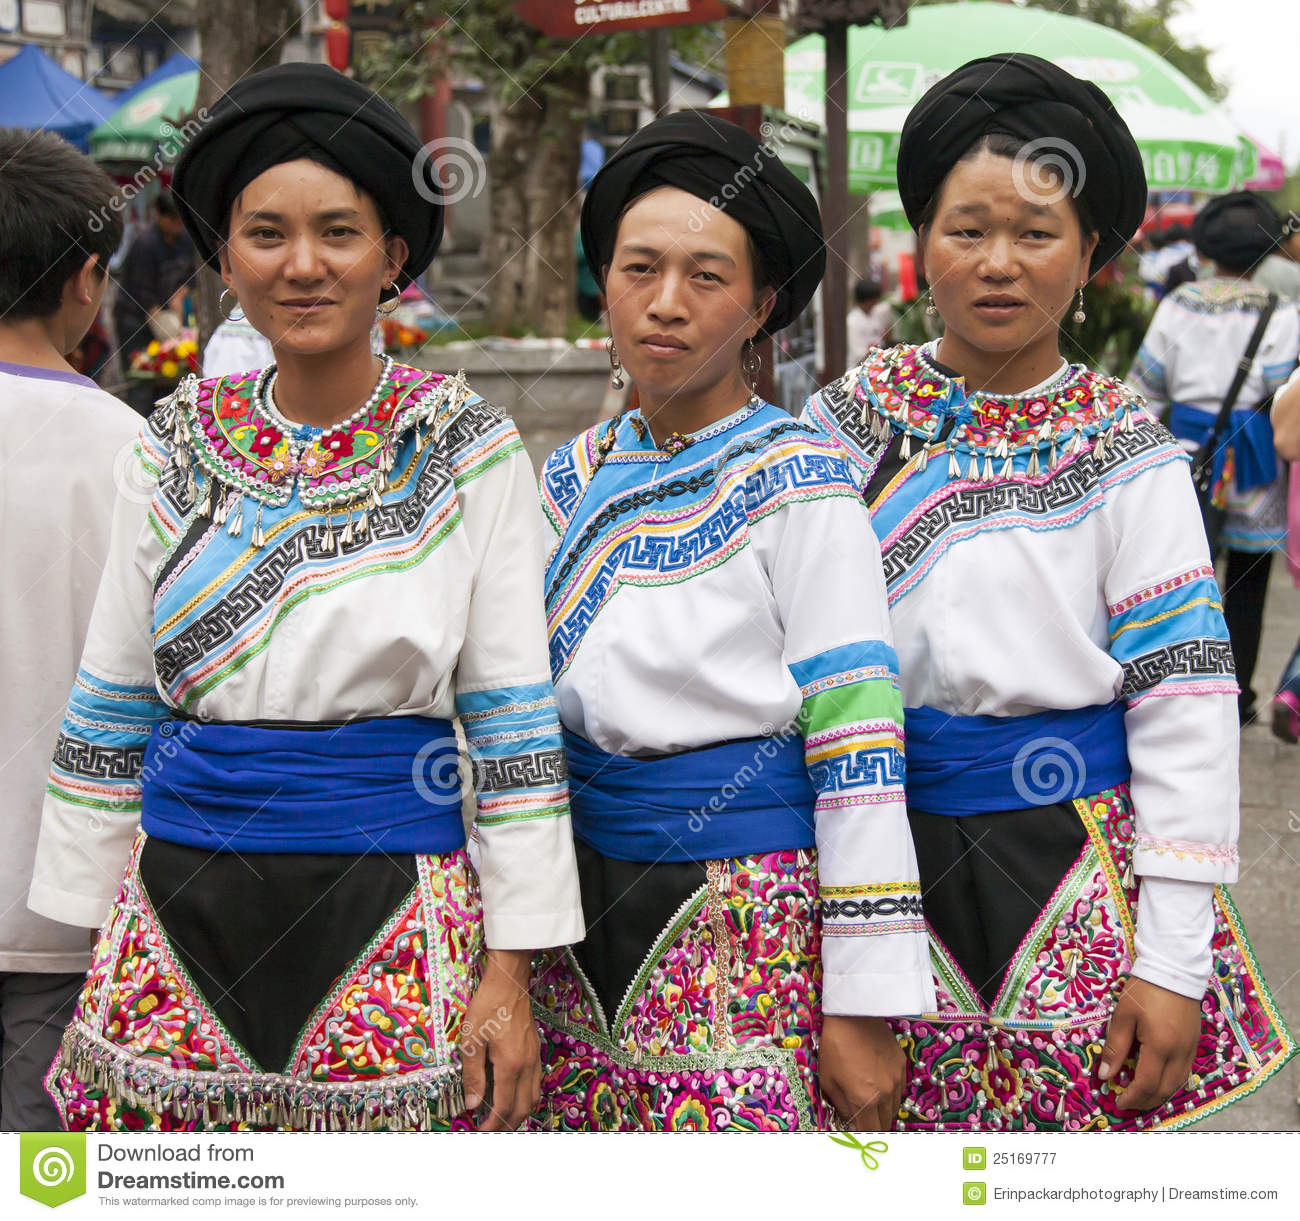 ethnic minorities In order to ensure that the 56 chinese ethnic groups live together in harmony, the government introduced a series of policies including ones to secure the equality and unity of ethnic groups, give regional autonomy to ethnic minorities and promote respect for the faith and customs of ethnic groups.